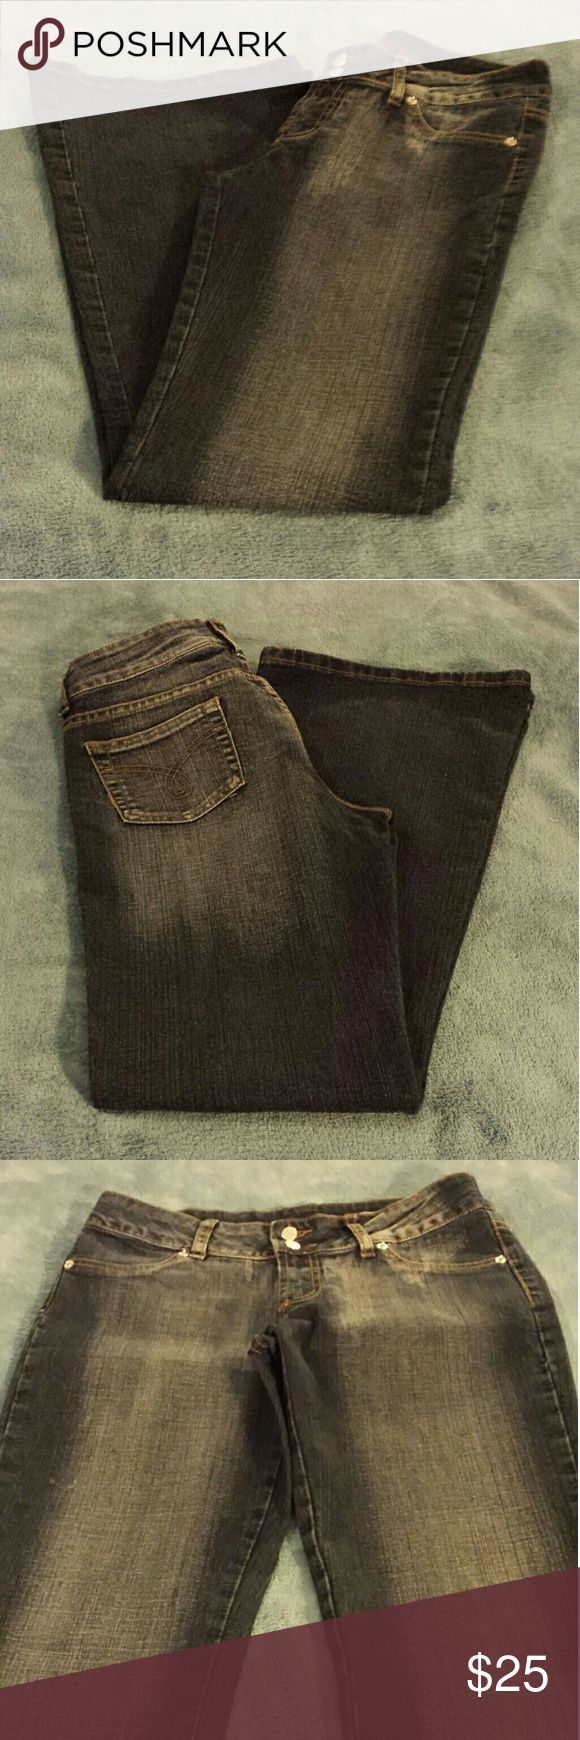 AQUA JEANS Black Jeans Pant with a hint of Grey , Two usable back pockets,Two front pockets not usable .Size 9/10, Inseam 32.1/2.  Style is Boot Cut.  Condition LIKE NEW). OFFERS ARE WELCOME. AQUA JEANS Jeans Boot Cut